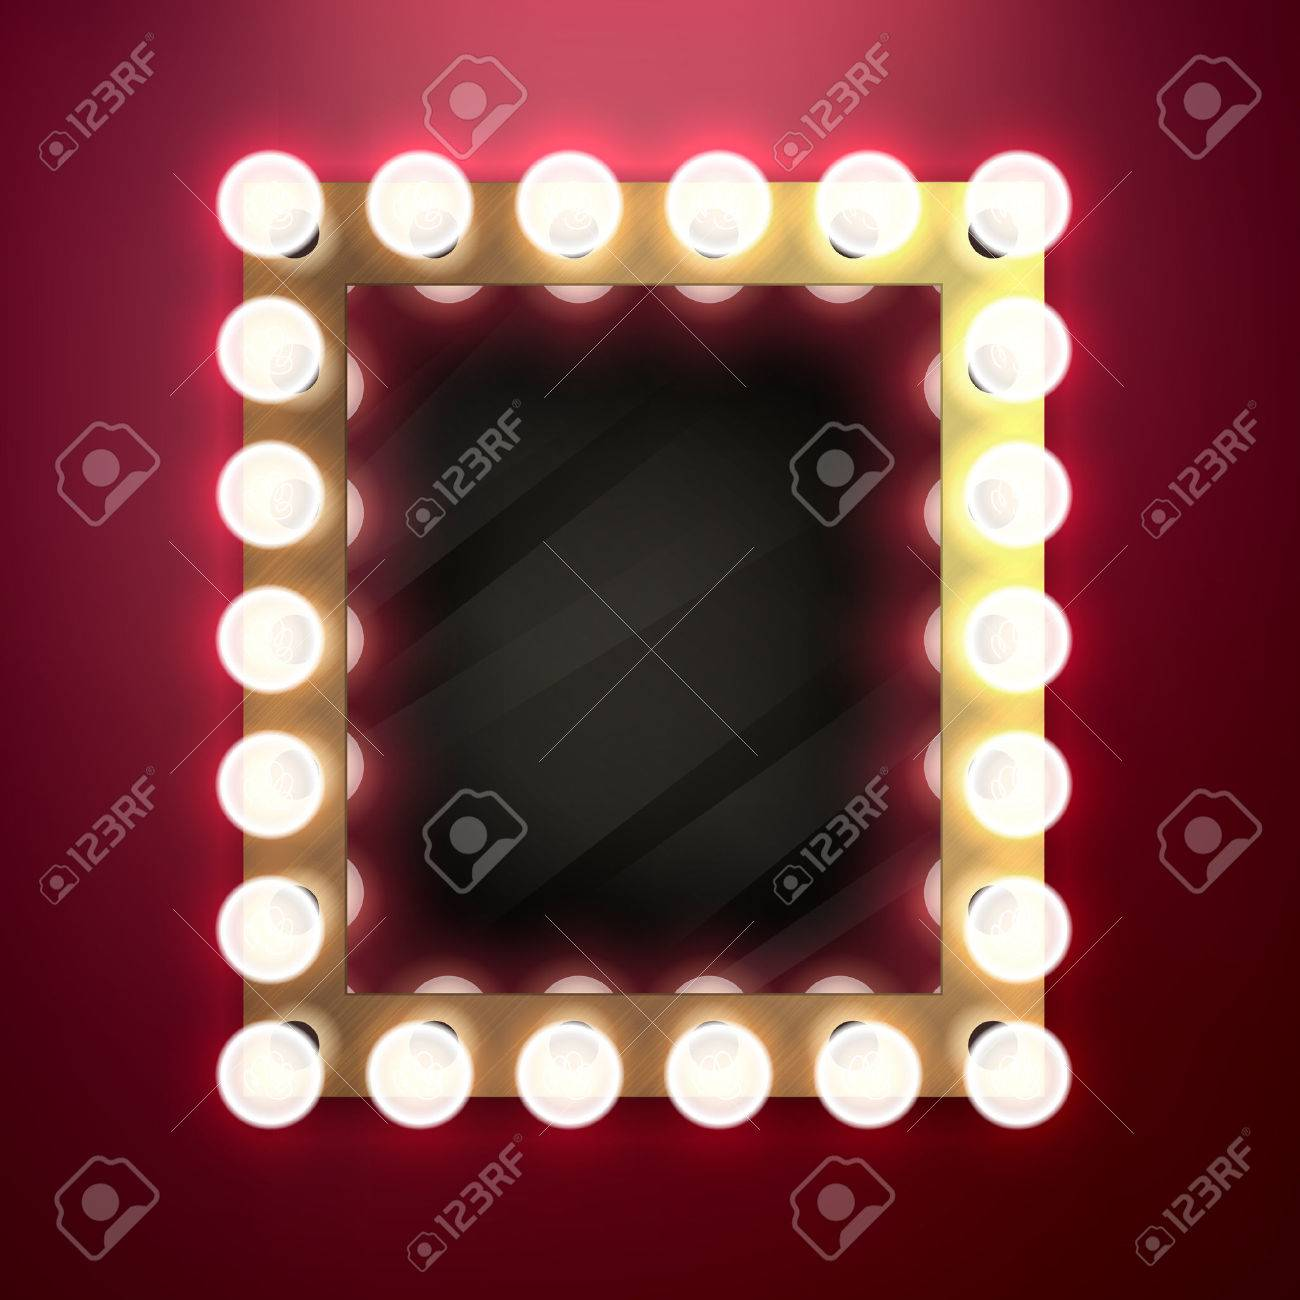 Realistic retro vintage make up mirror with light bulbs vector illustration. Beauty backstage design concept. - 51946340